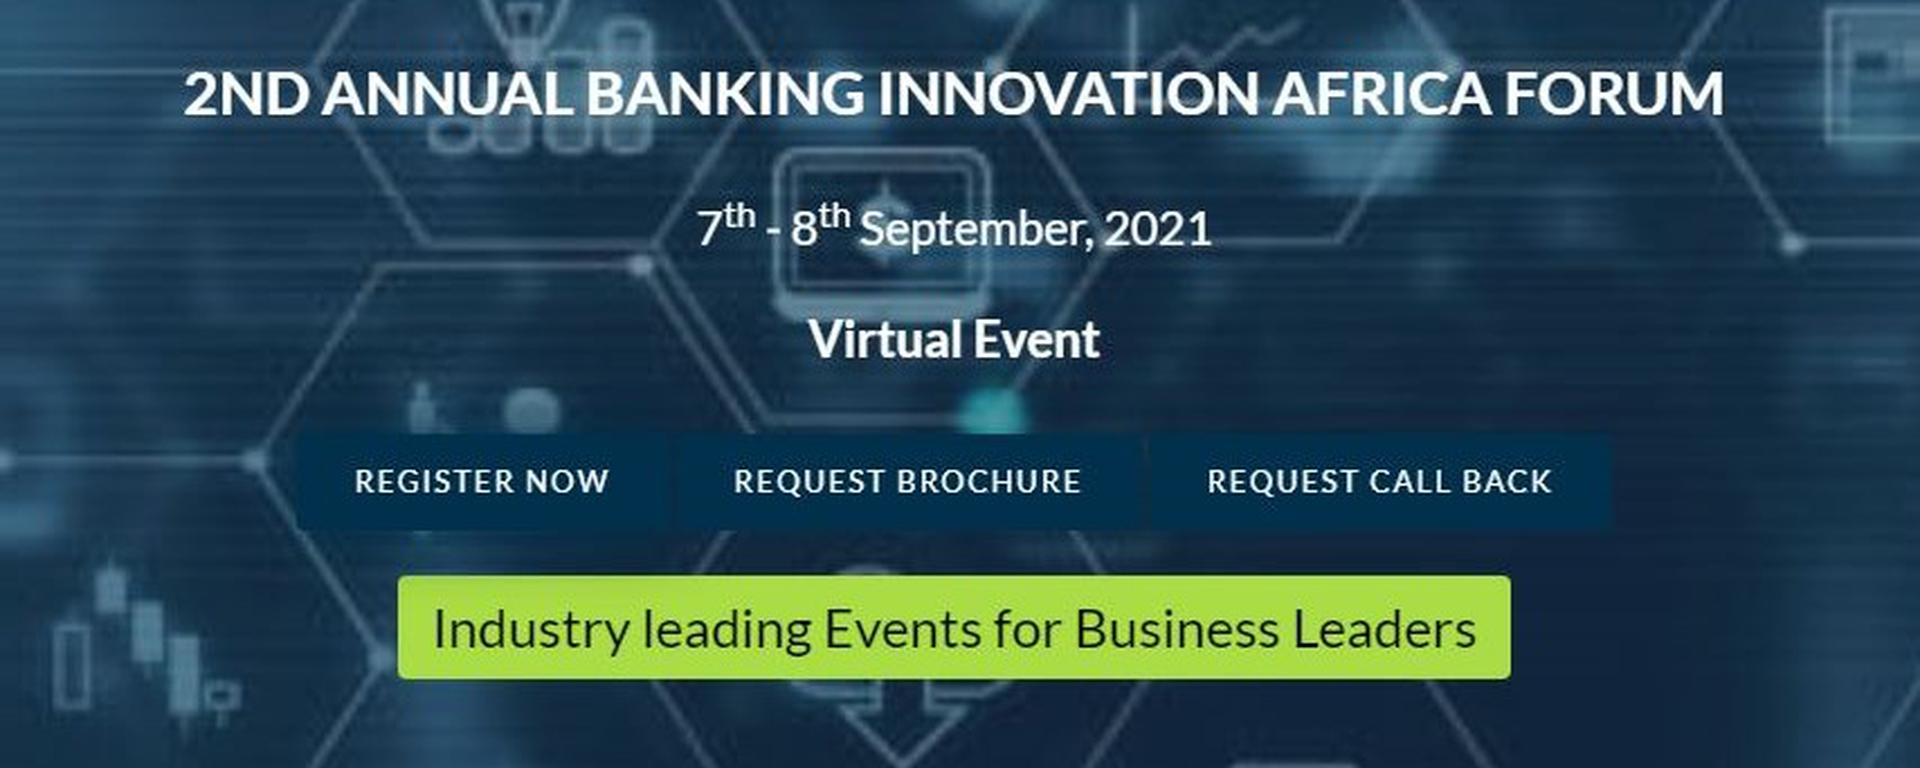 Leadvent Group - 2nd  Annual Banking Innovation Africa Forum Movemeback African event cover image